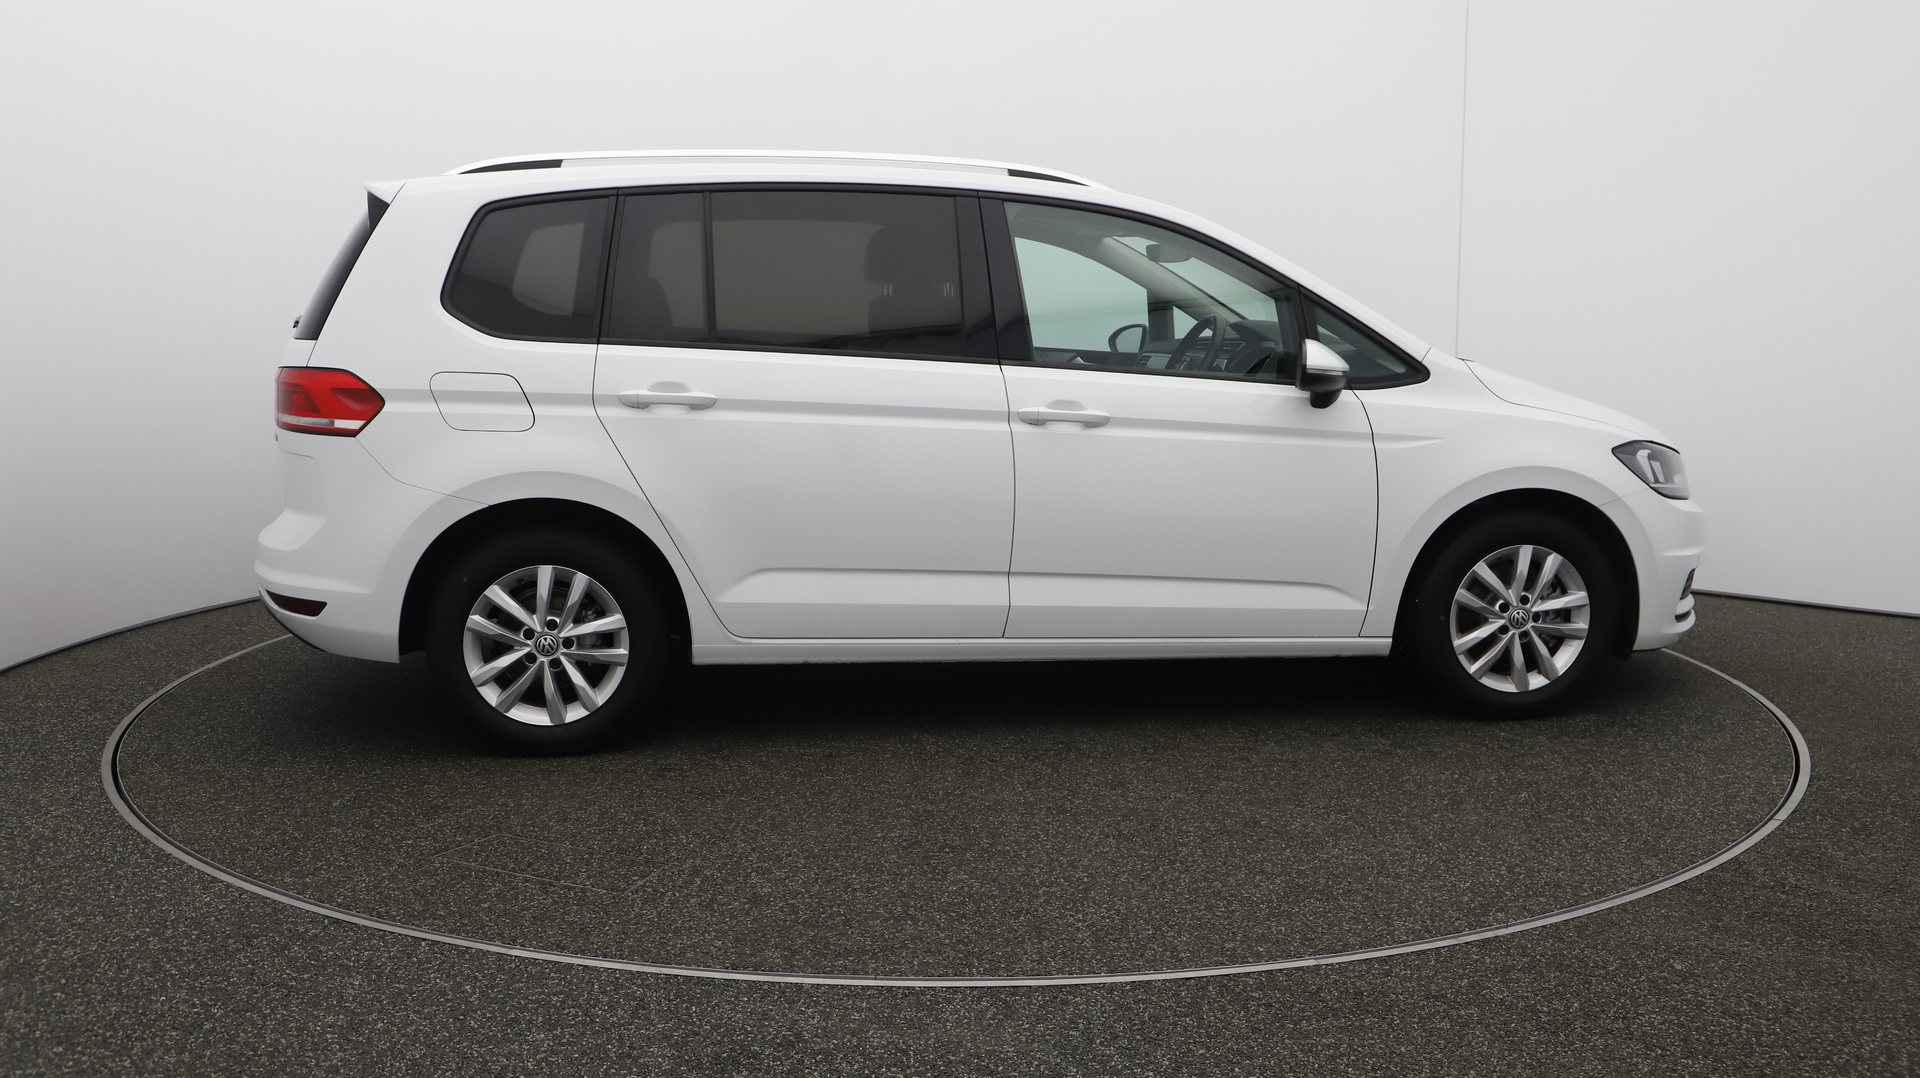 Volkswagen Touran se-family Service History